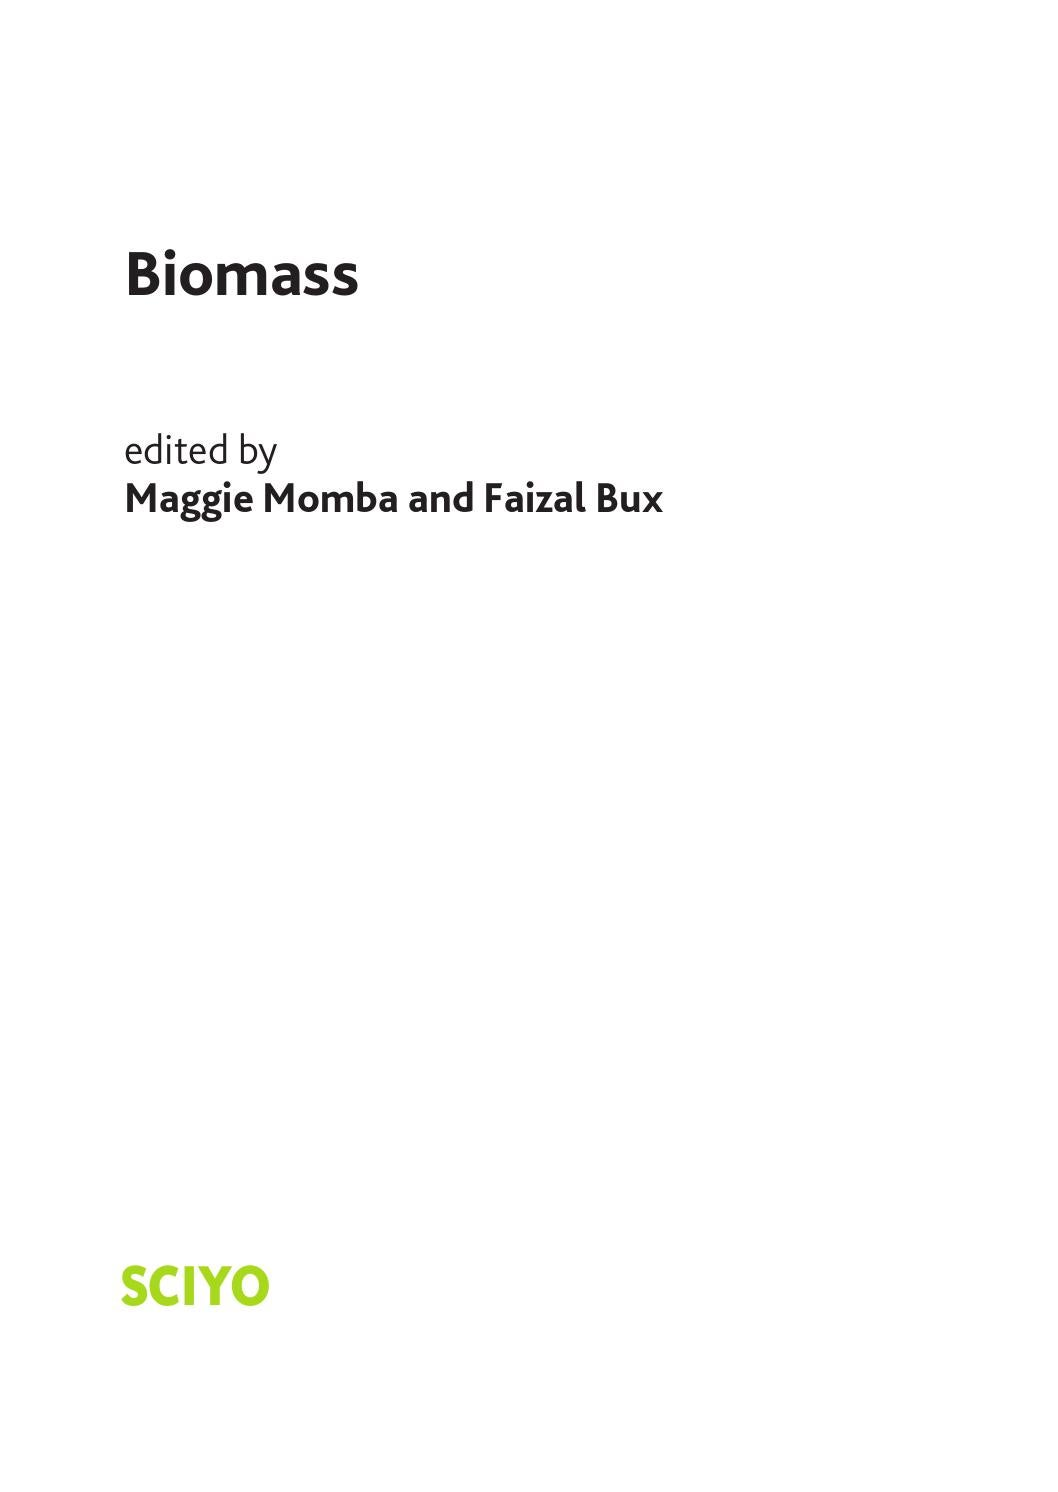 Biomass By Templar Knight Issuu Problem With Simulating A Circuit In Proteus 4040